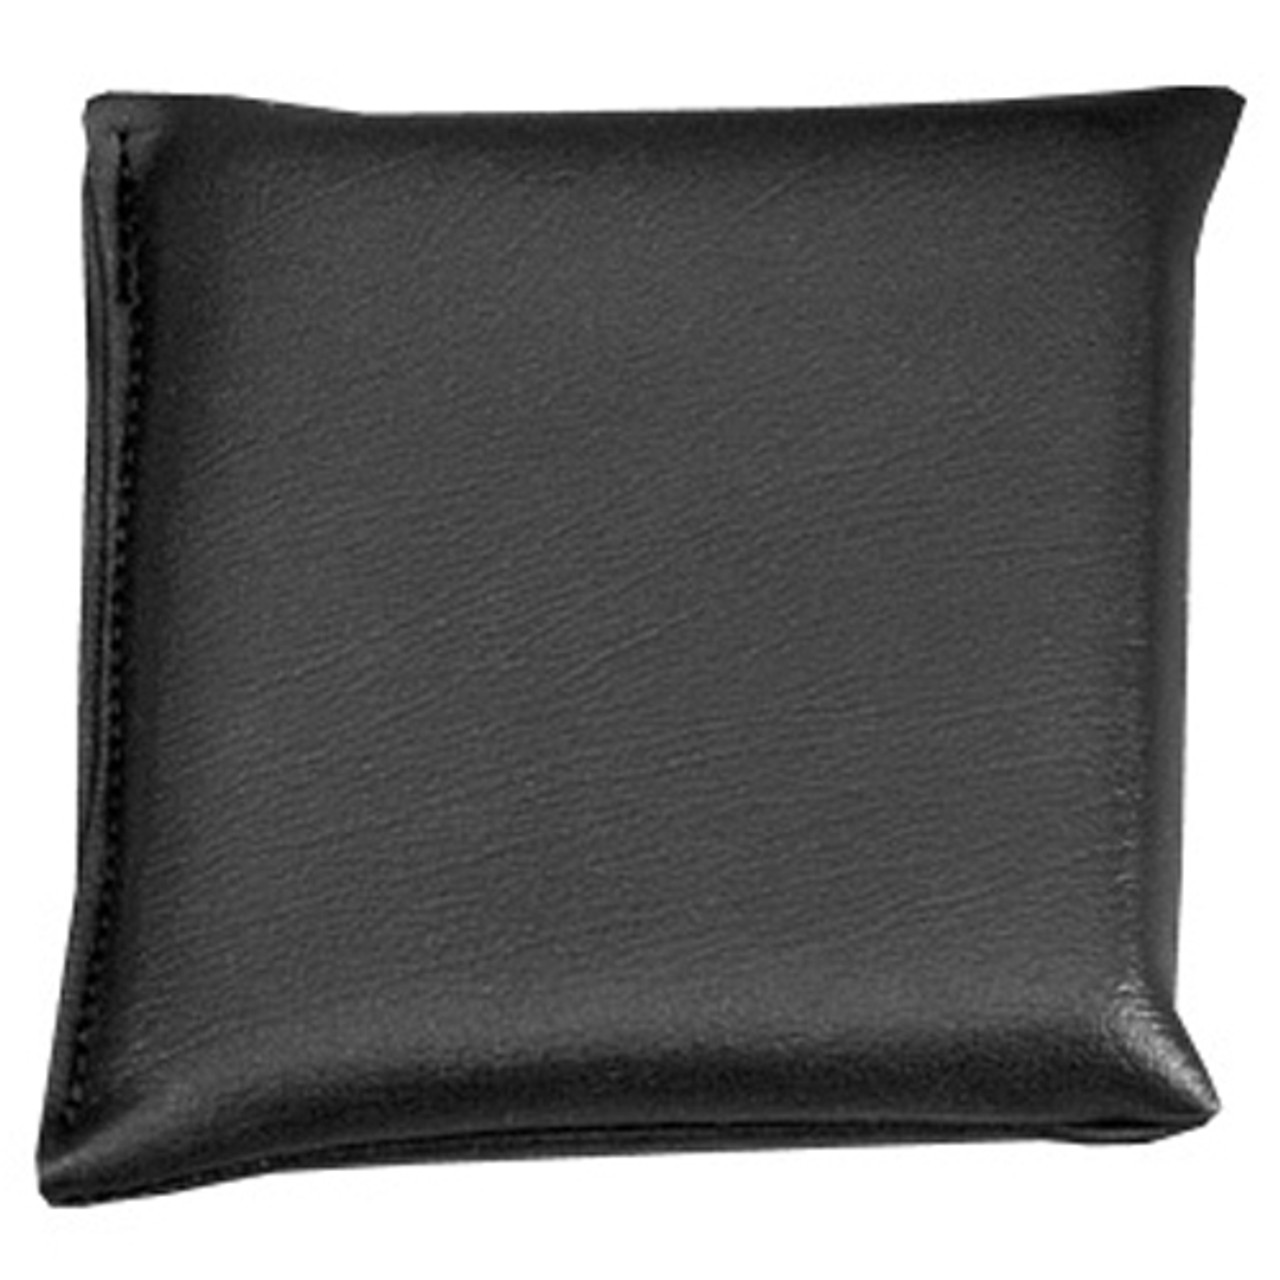 Alignment Pillow, Double Thickness